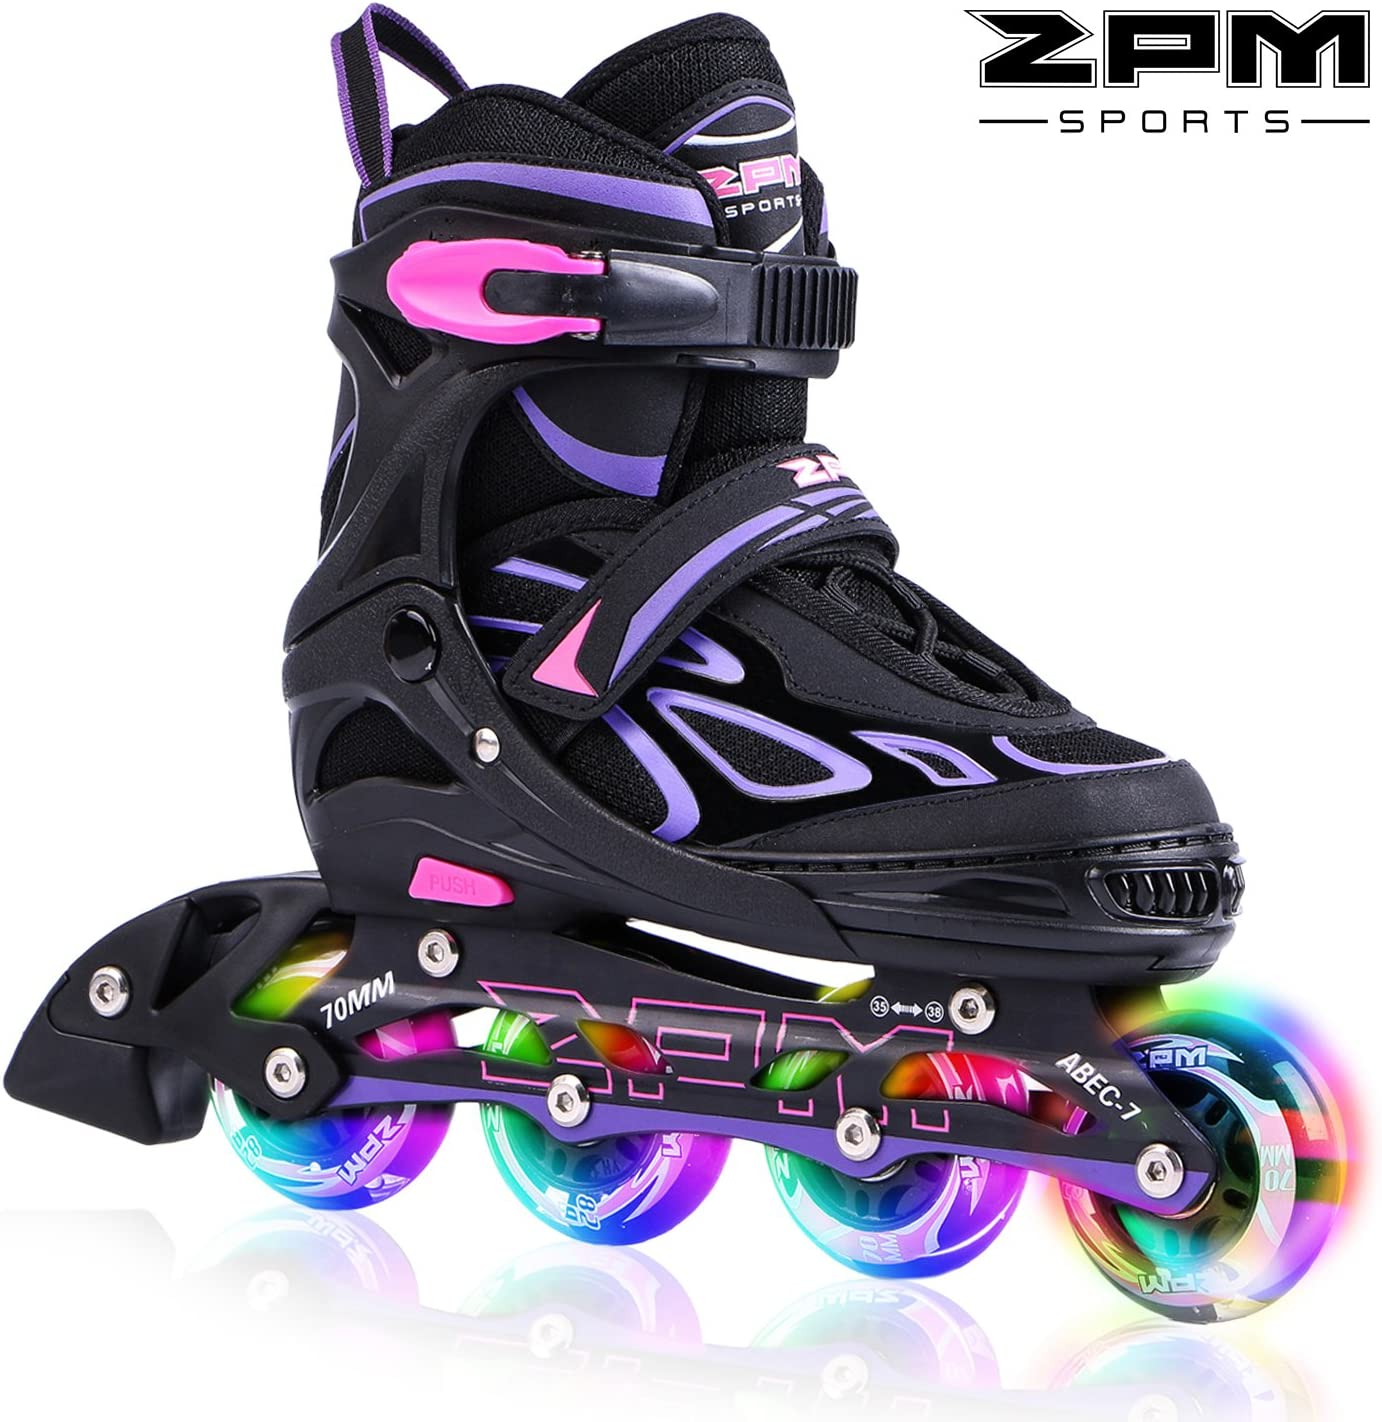 2pm Sports Adjustable Light up Kid Inline Skates,Roller Blades for Boys and Girls / UK